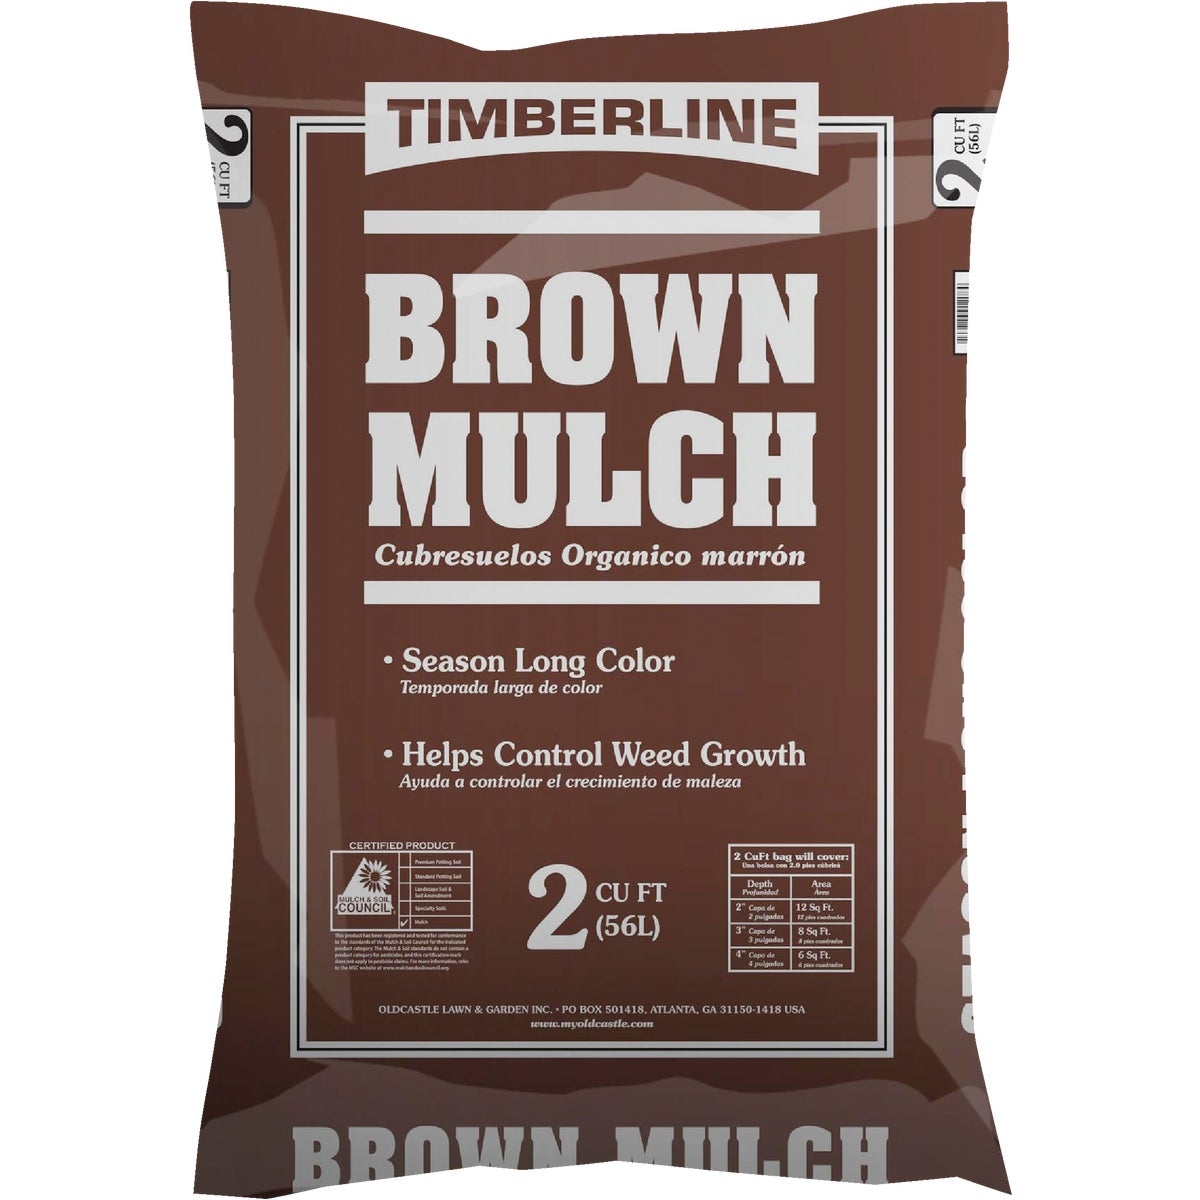 2CUFT BROWN LNDSCP MULCH